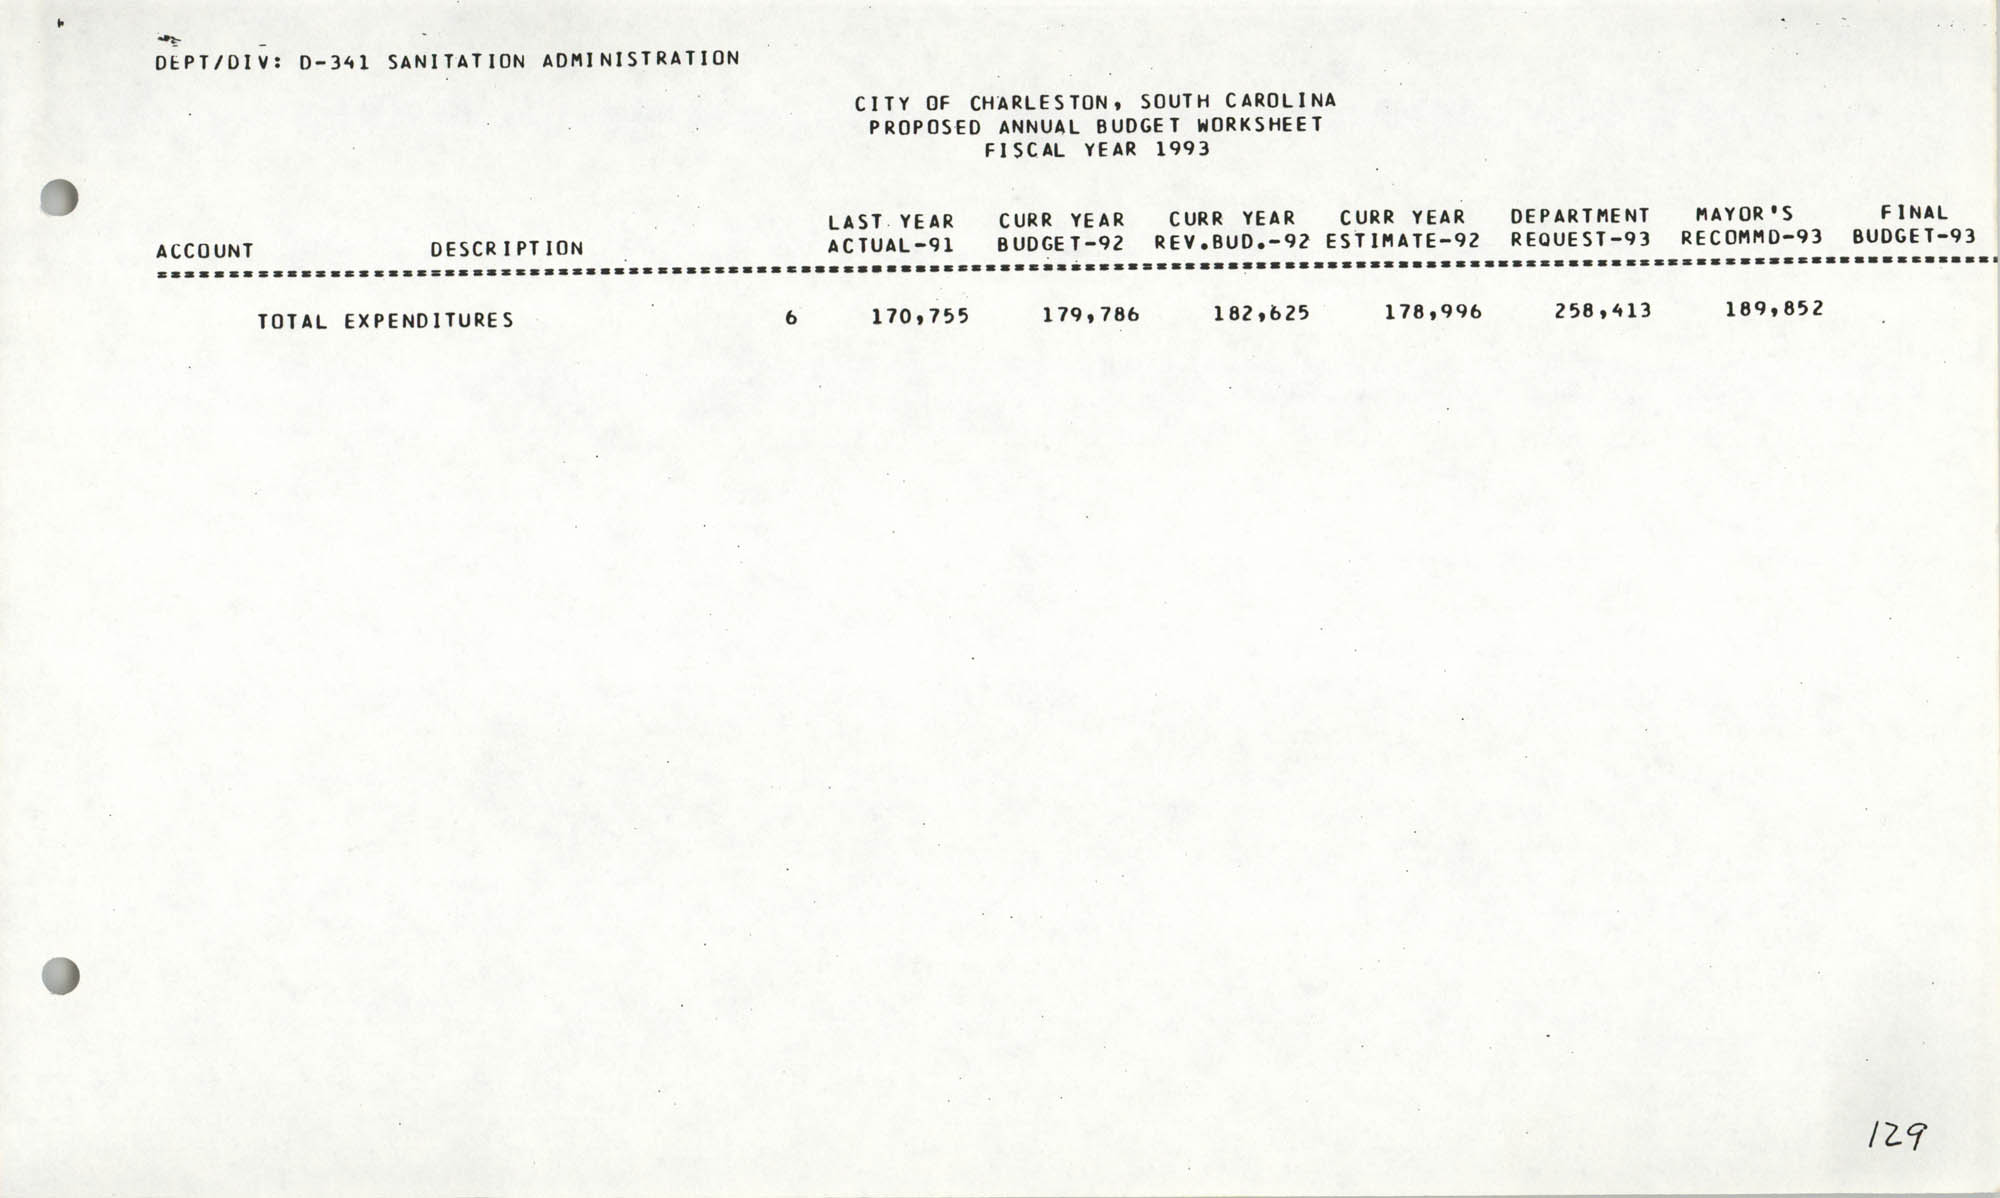 The City Council of Charleston, South Carolina, 1993 Budget, Page 129